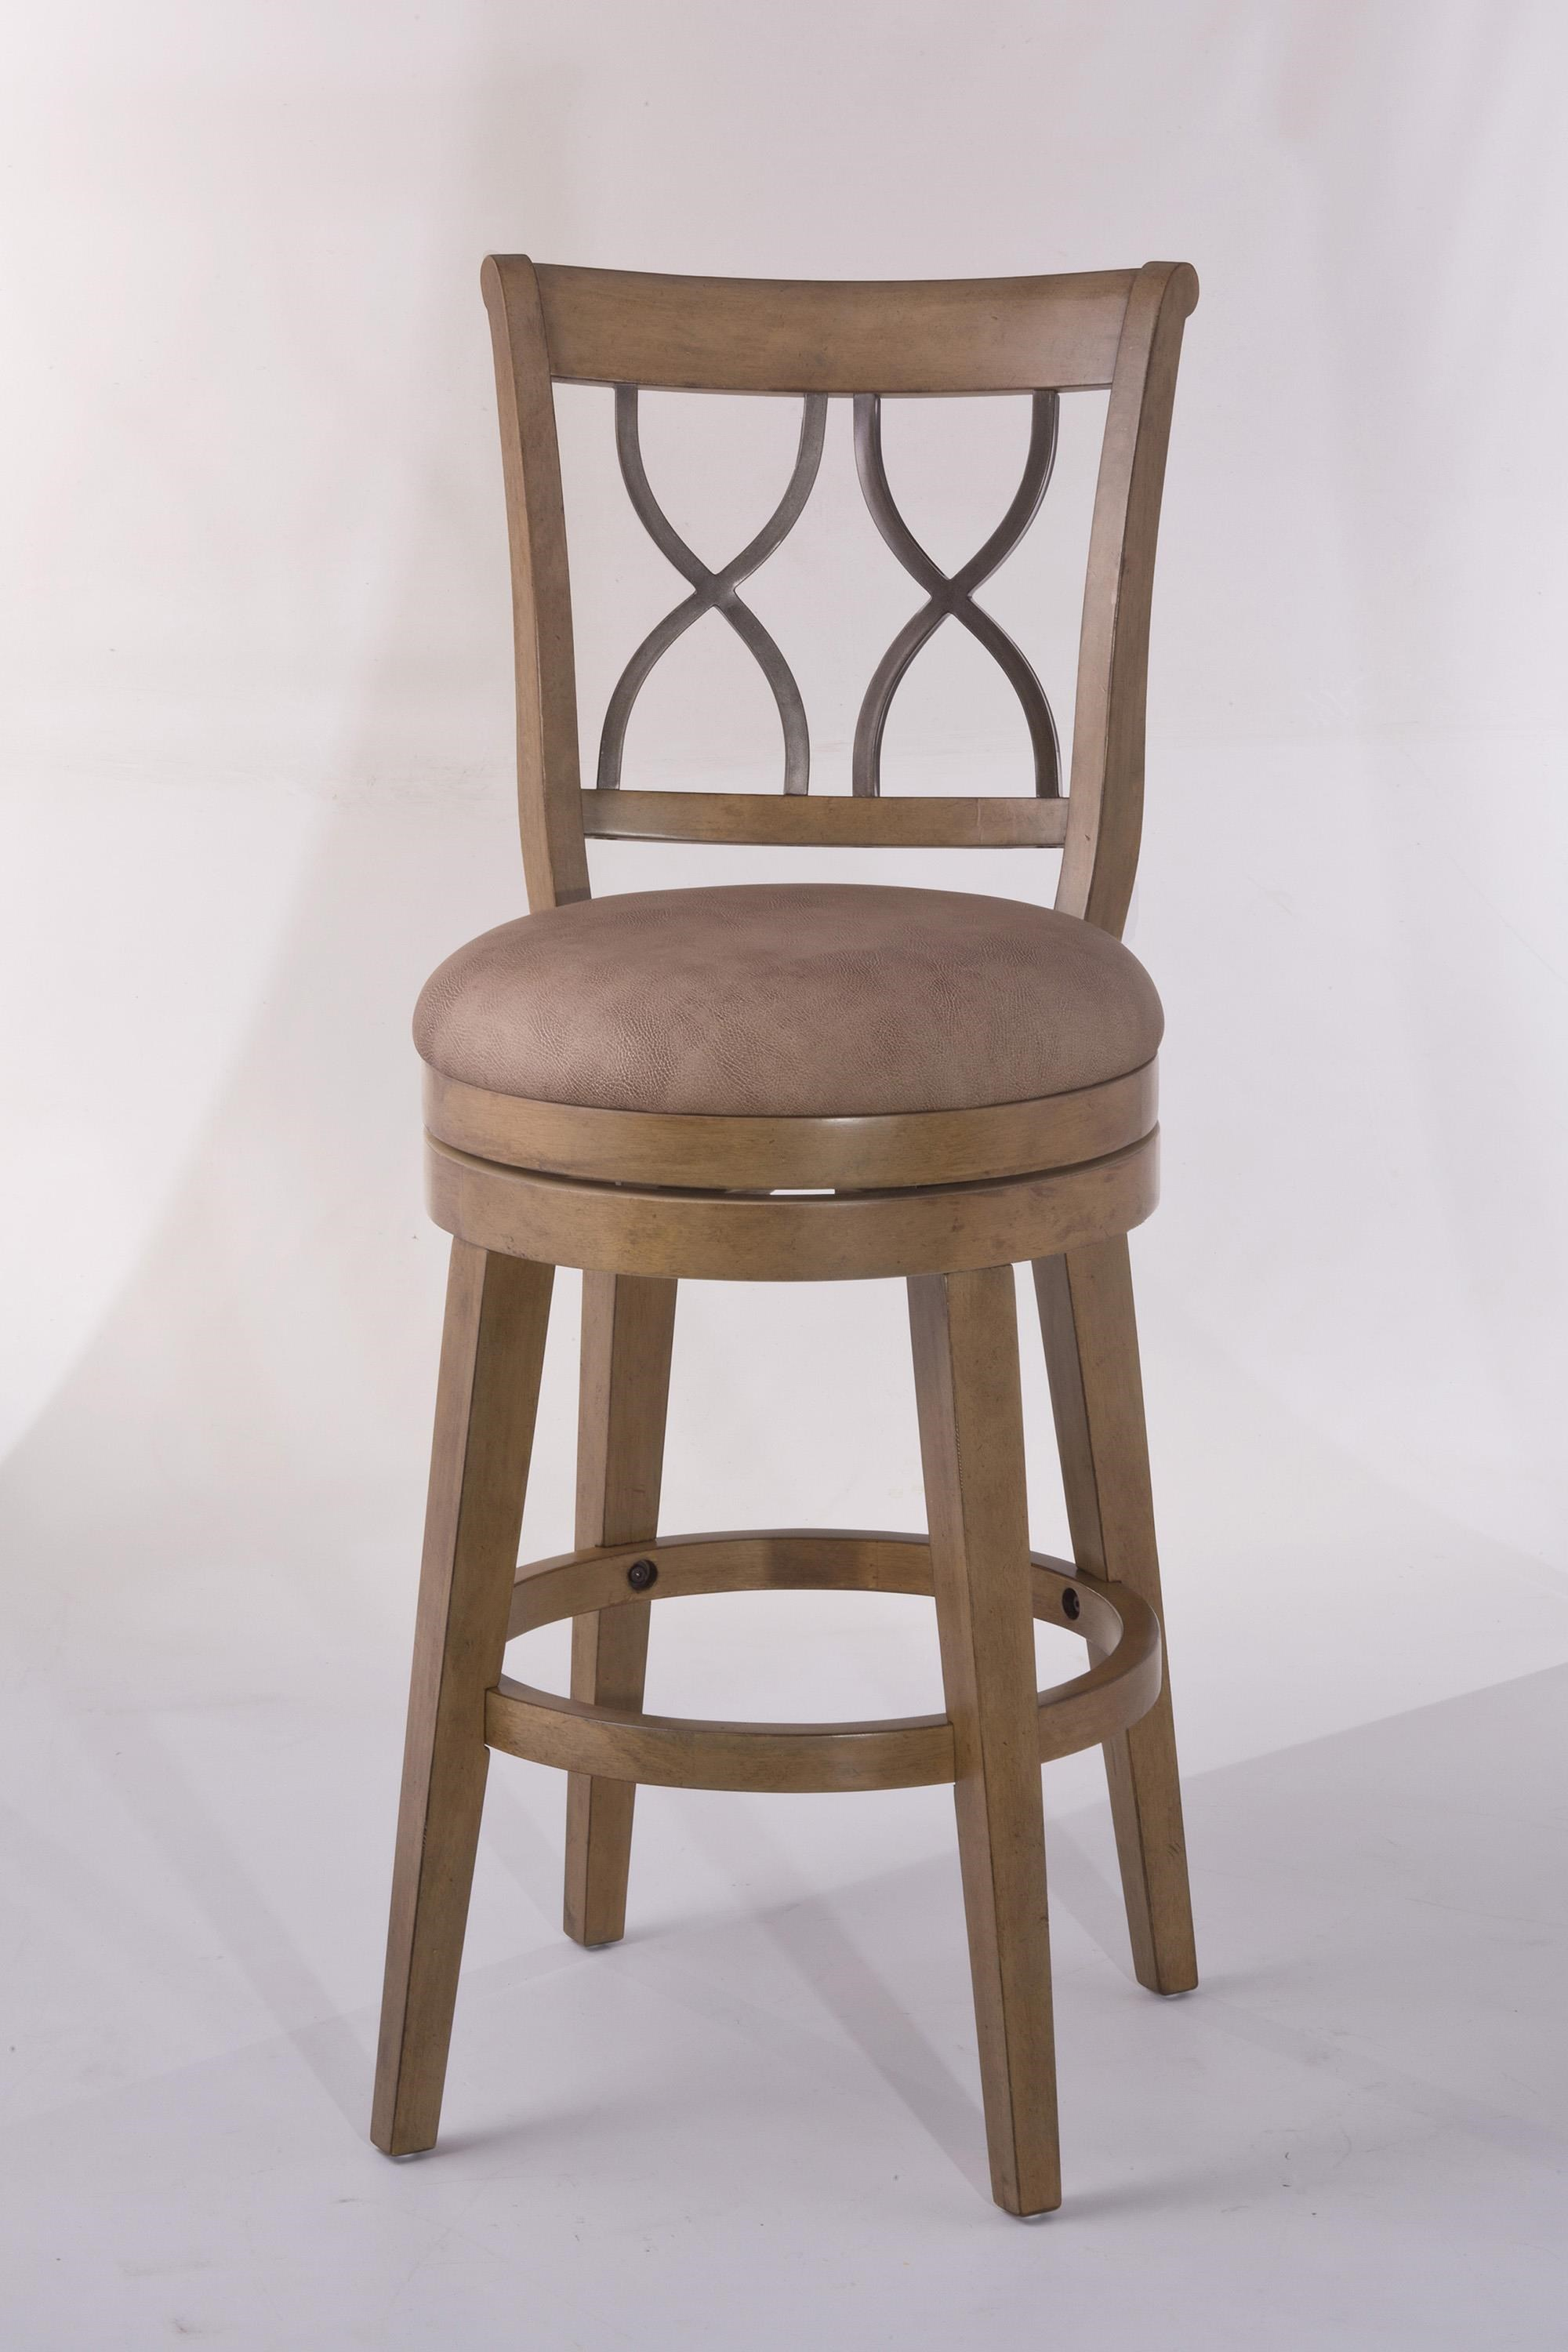 Hillsdale Wood Stools Reydon Swivel Counter Stool Godby  : products2Fhillsdale2Fcolor2Fwood20stools4724 826s b1jpgscalebothampwidth500ampheight500ampfsharpen25ampdown from www.godbyhomefurnishings.com size 500 x 500 jpeg 23kB